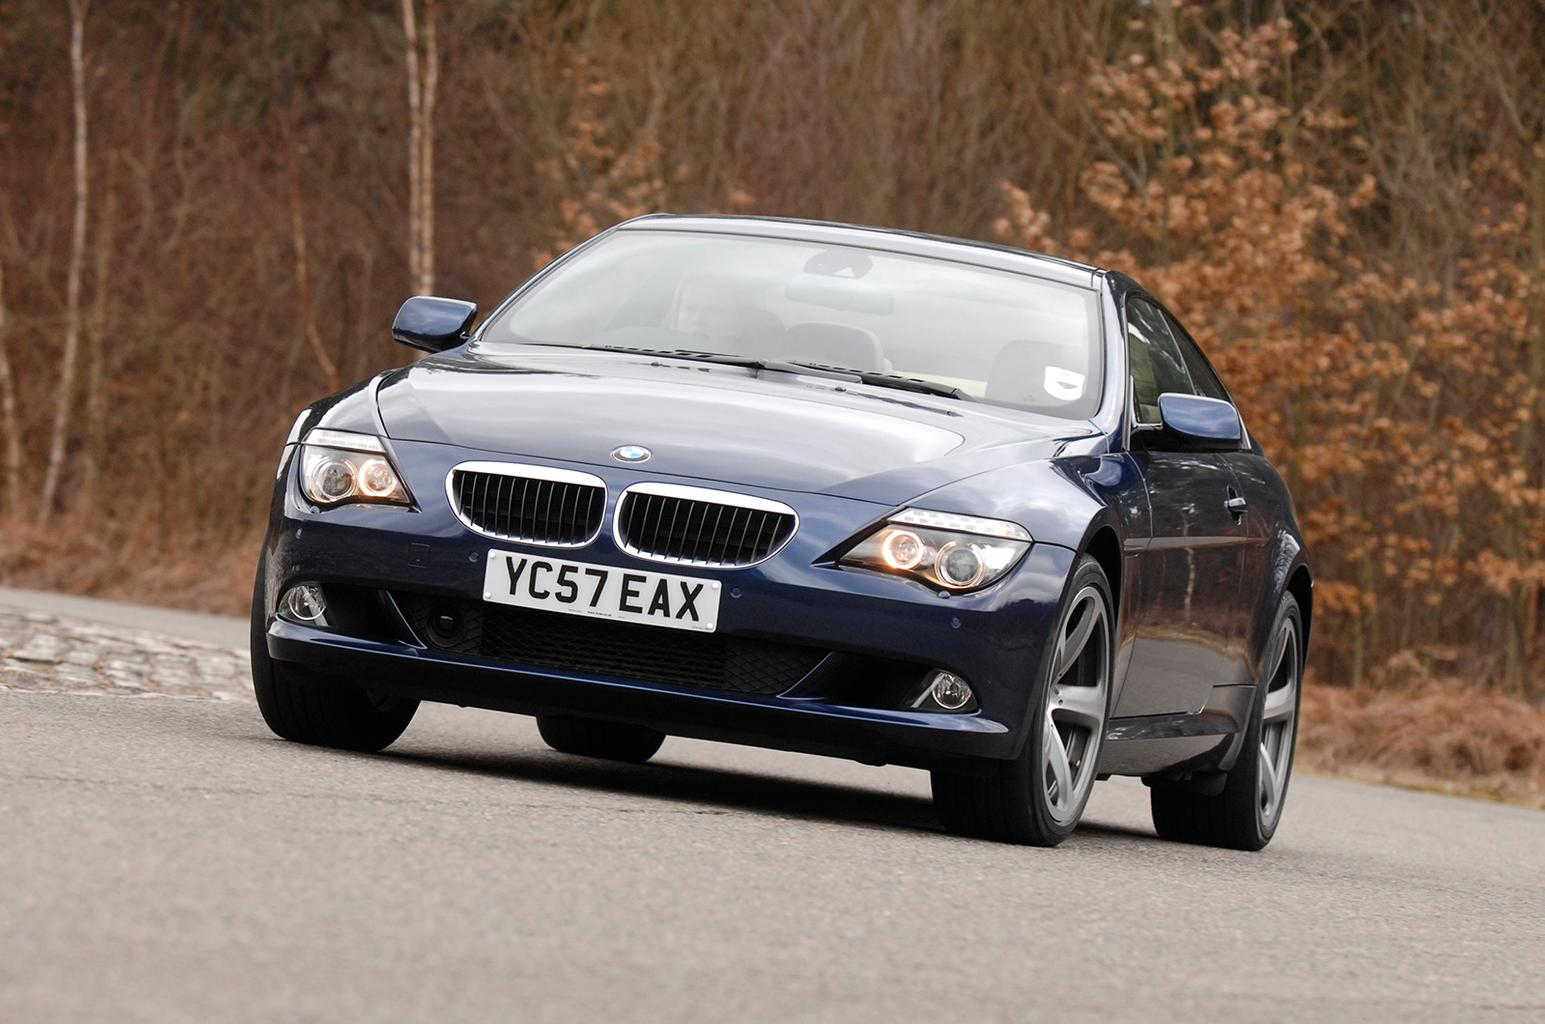 Best used coupes for less than £10,000